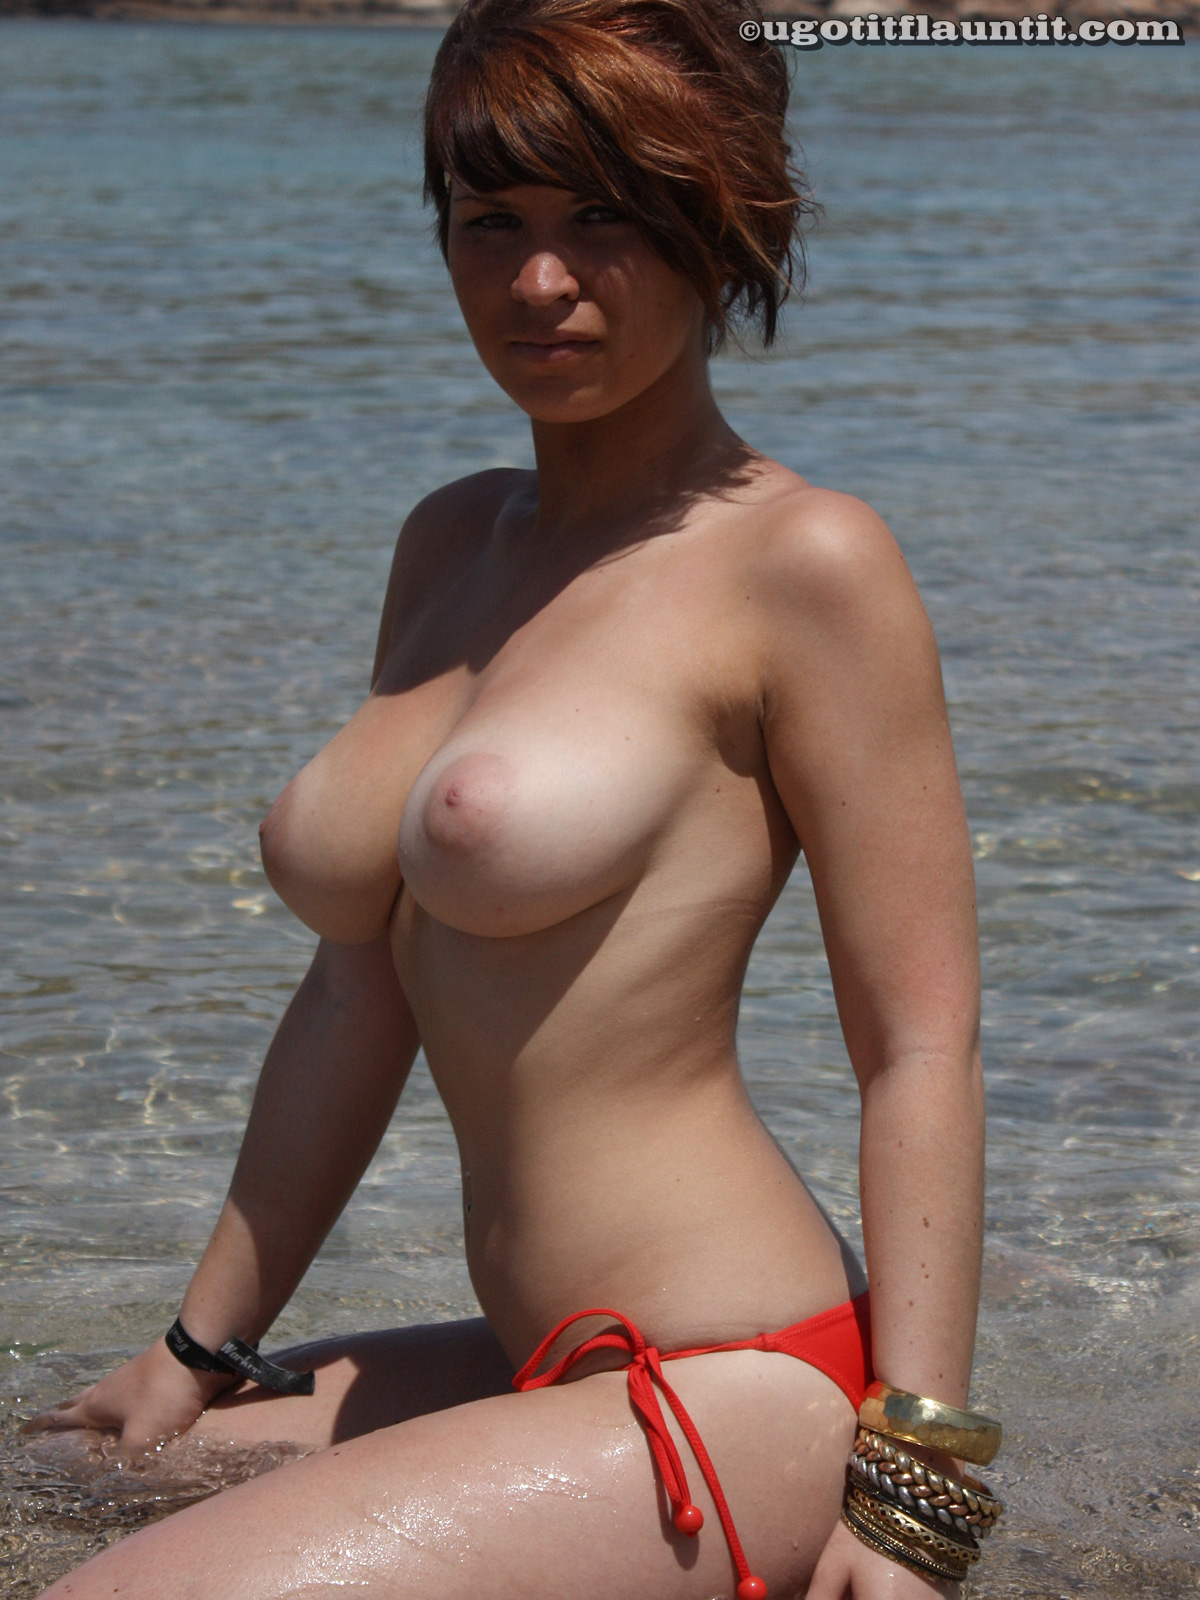 Did Busty asian red bikini beach